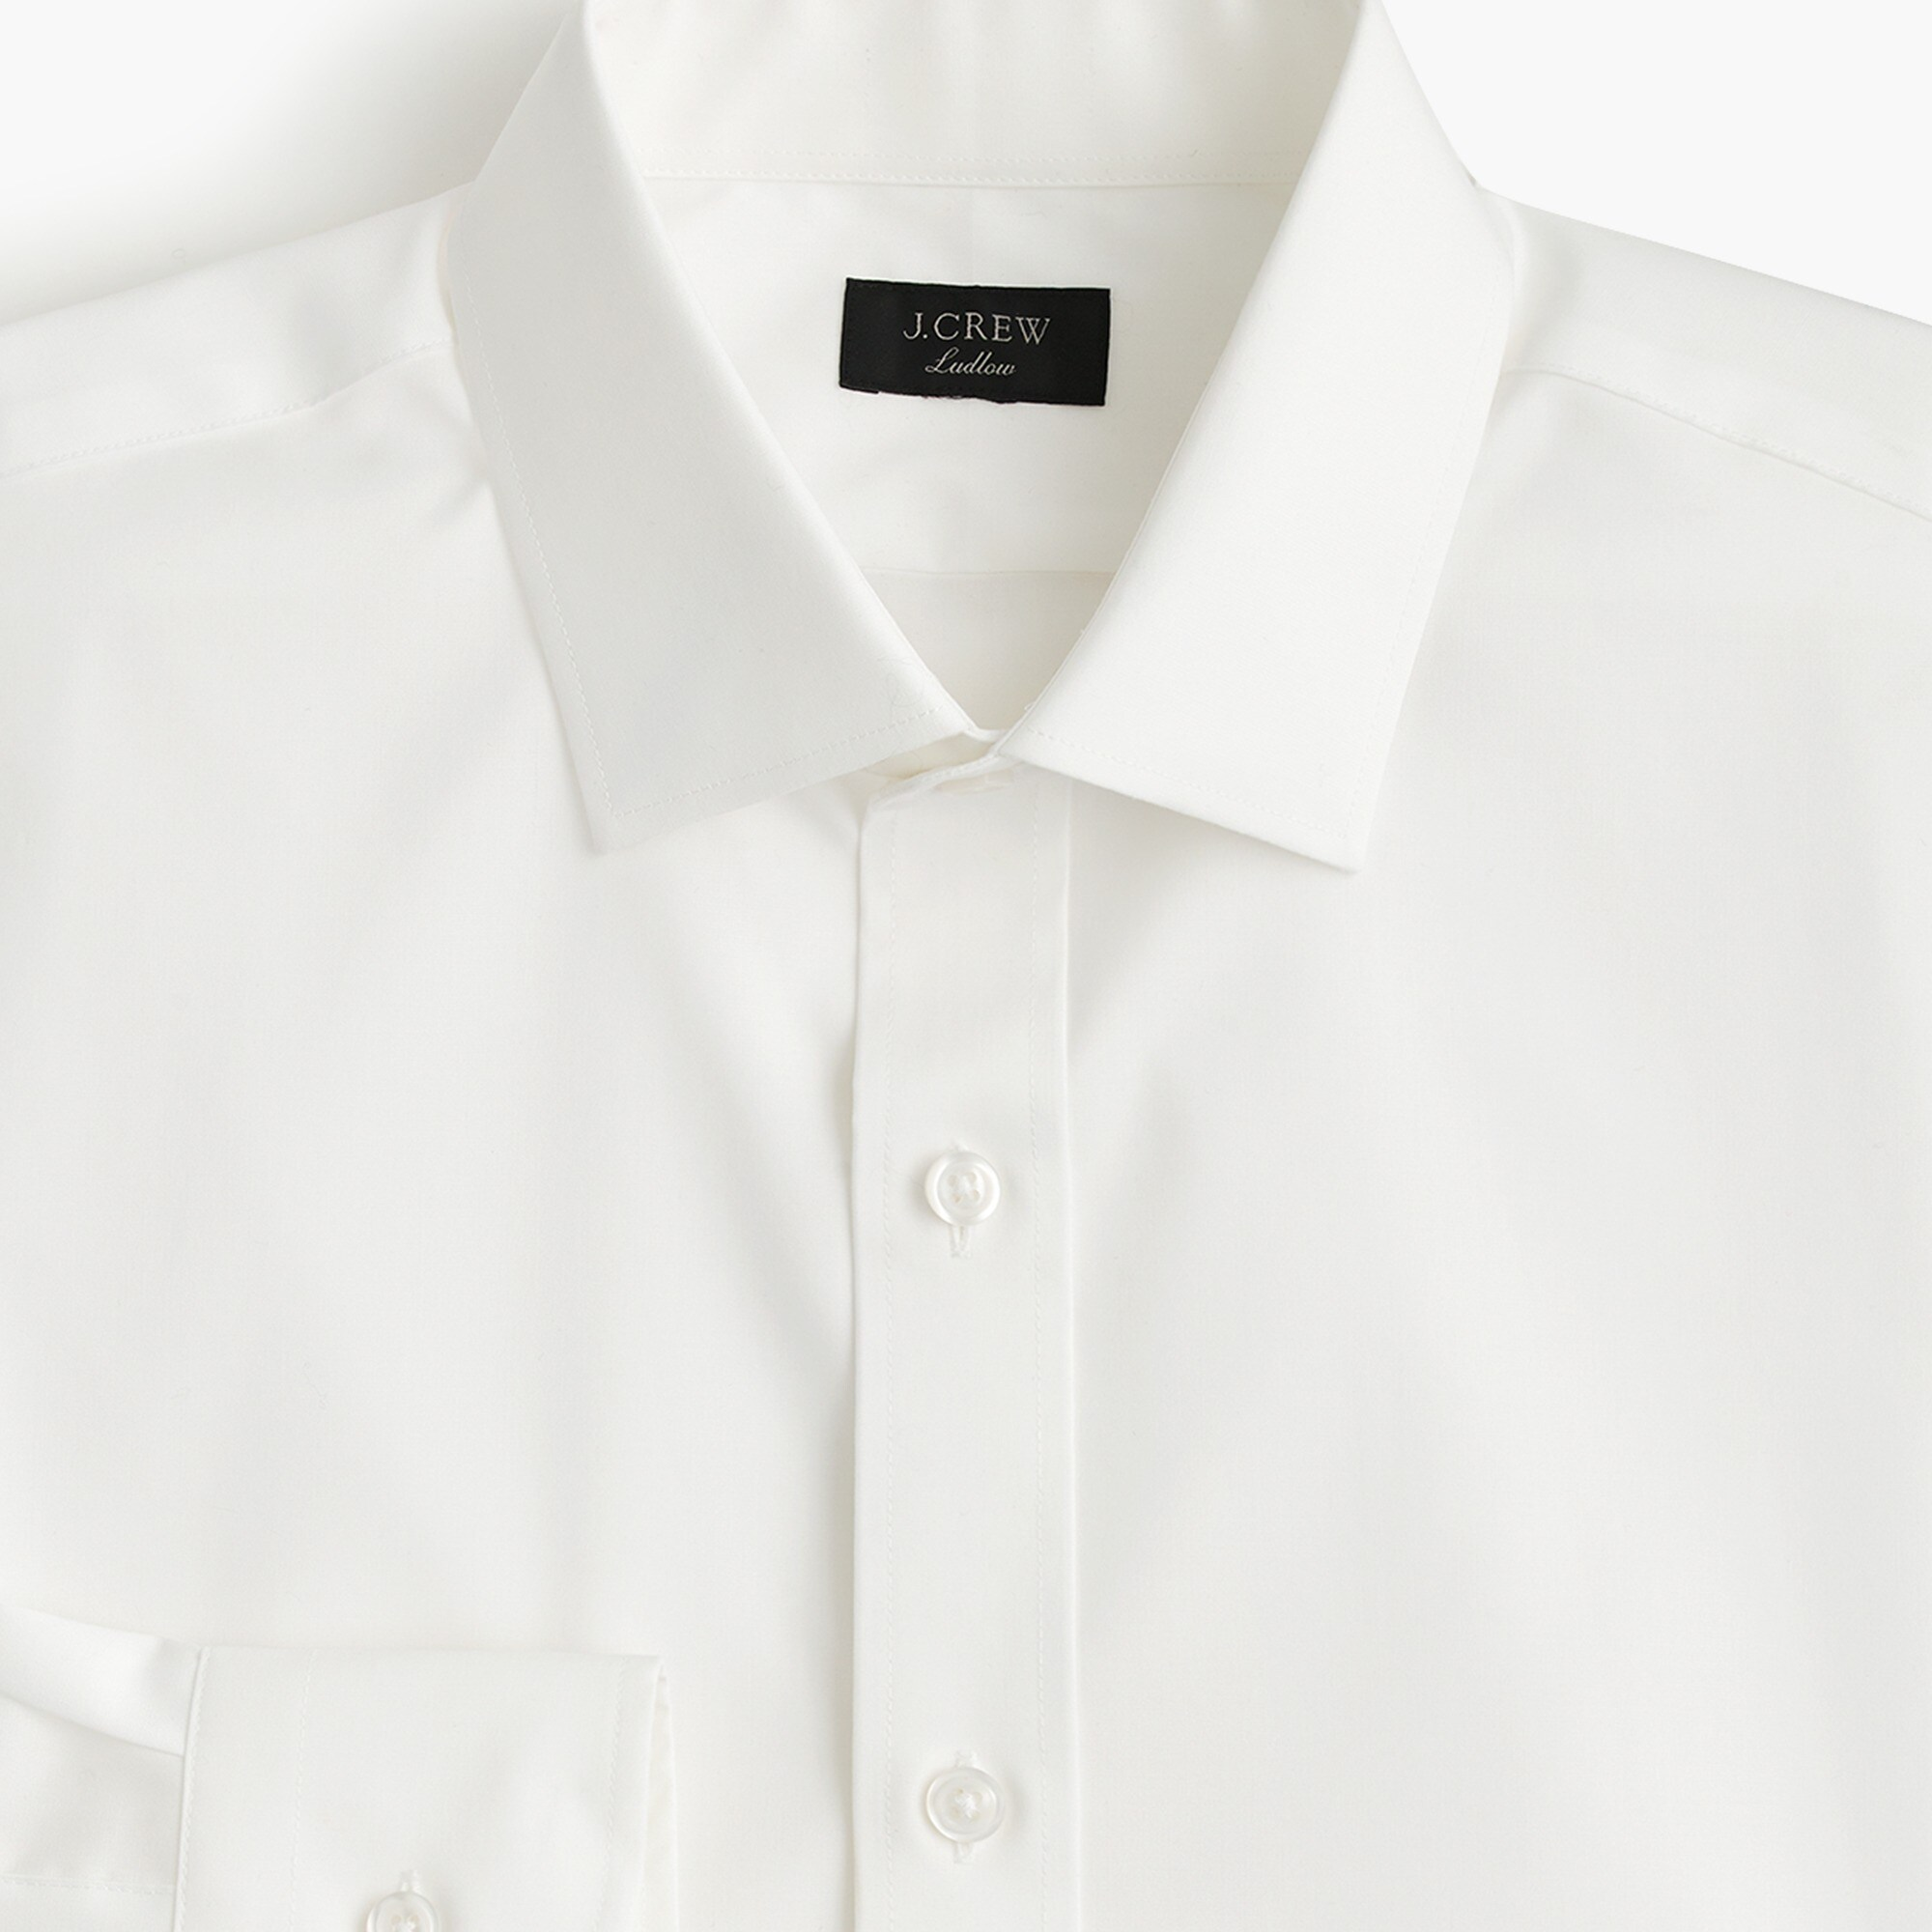 Image 1 for Ludlow Slim-fit stretch two-ply easy-care cotton dress shirt in solid